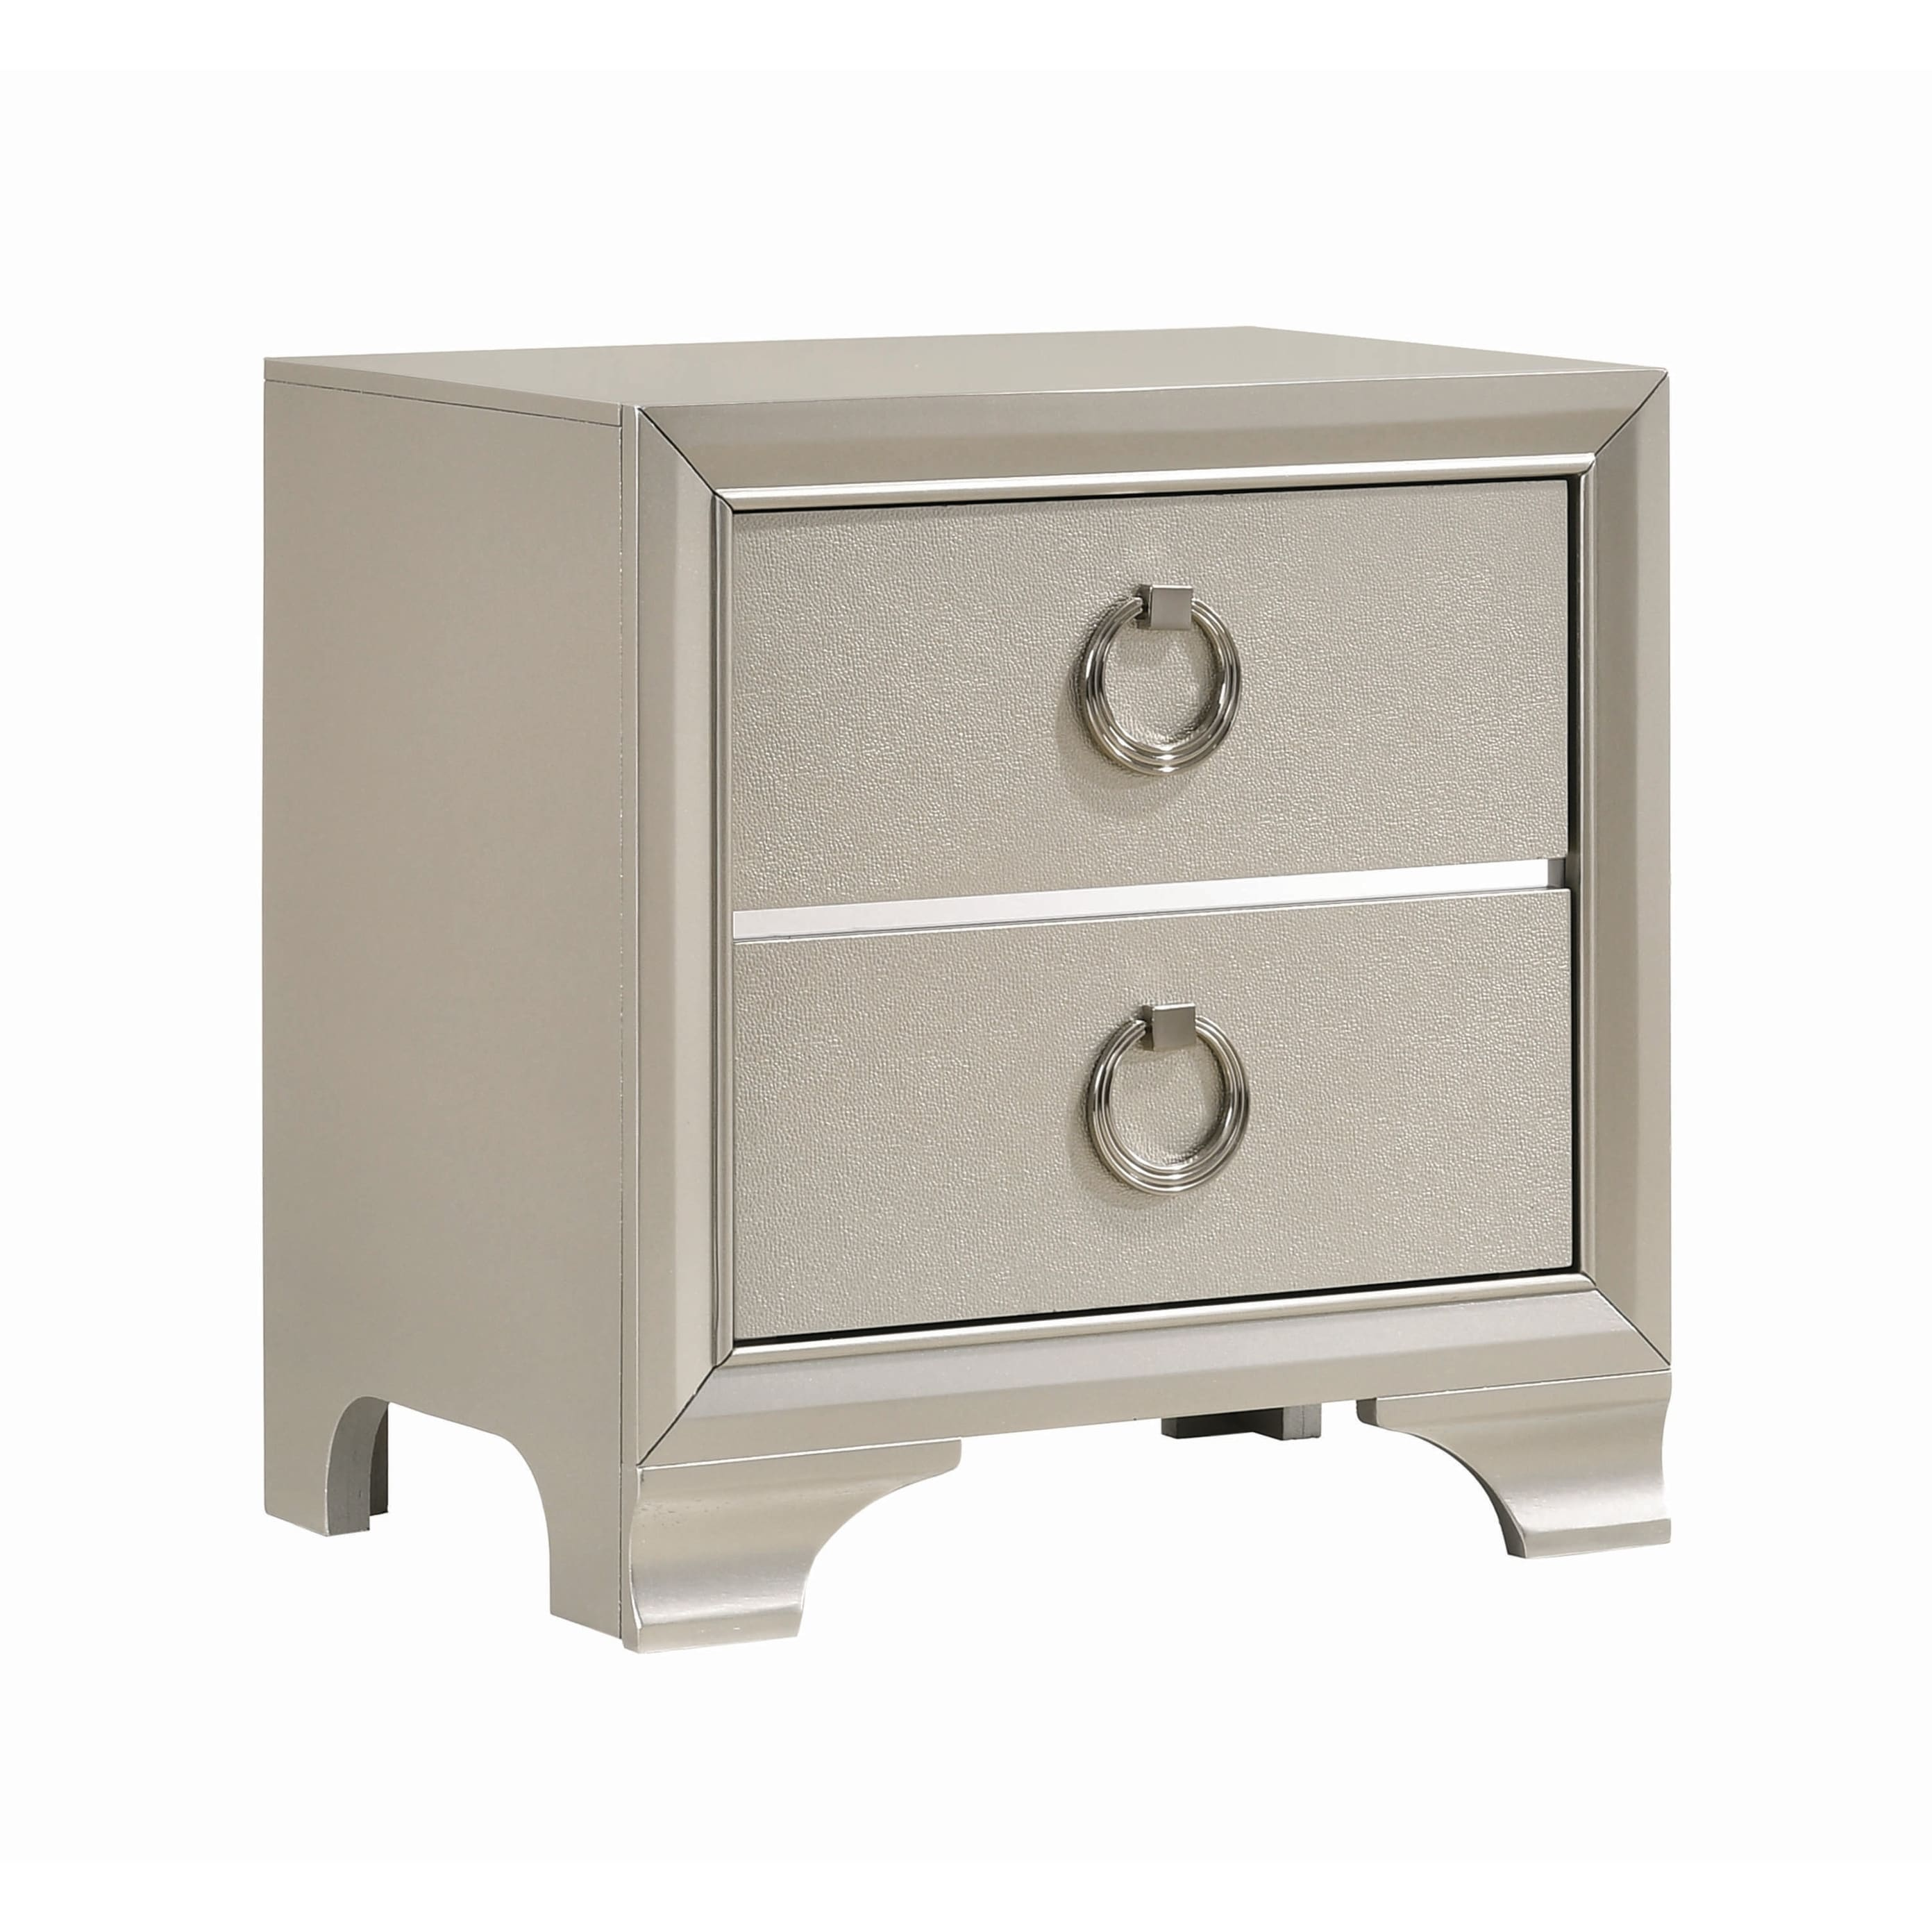 Wooden Nightstand With Two Drawers And Oversized Ring Handles Silver